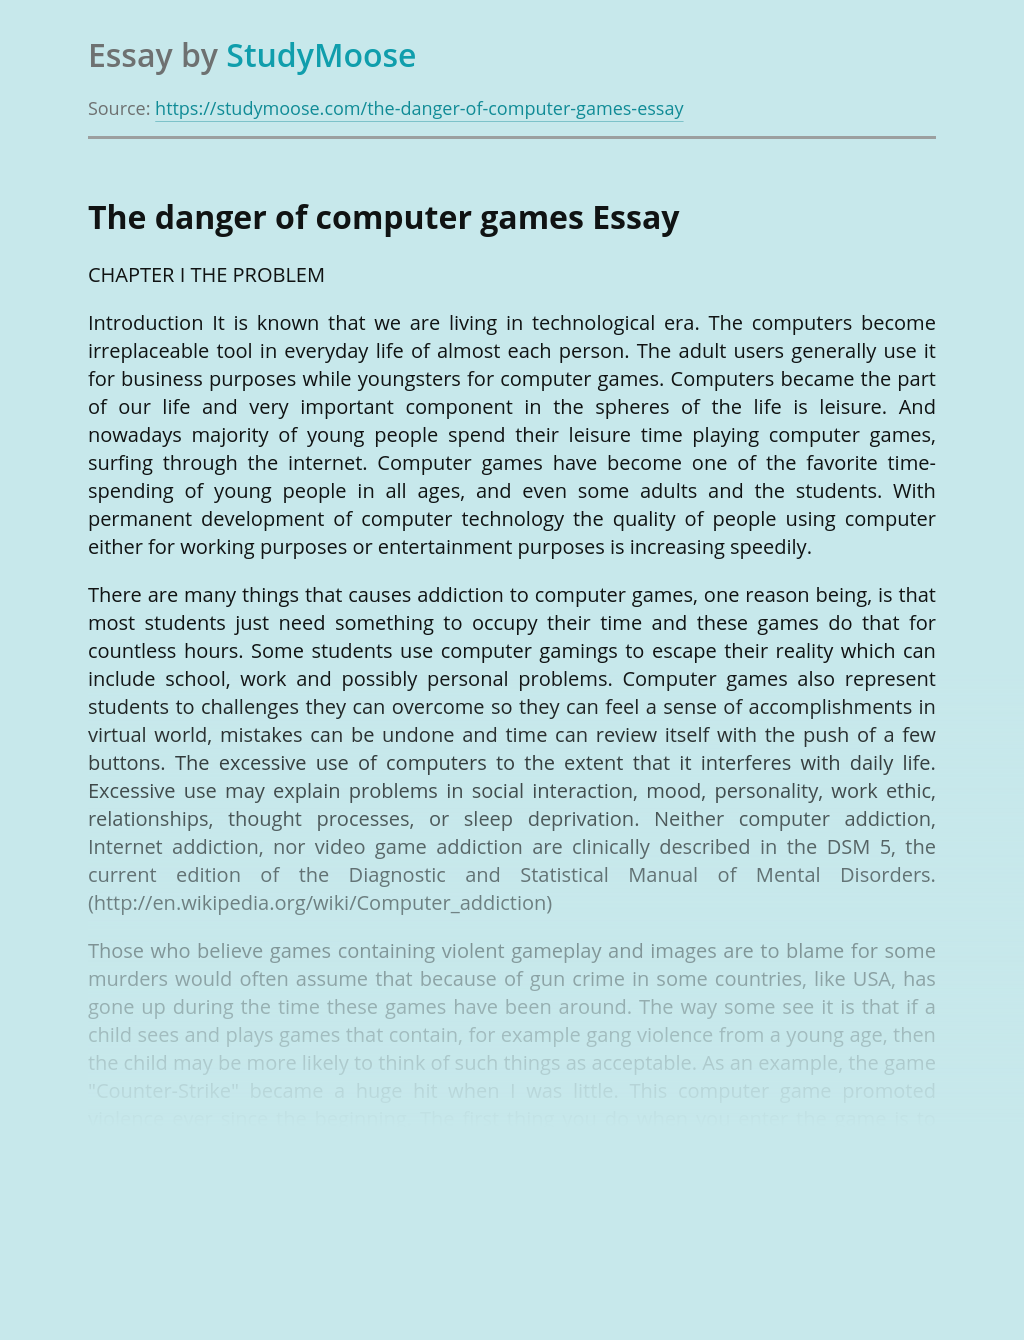 The danger of computer games